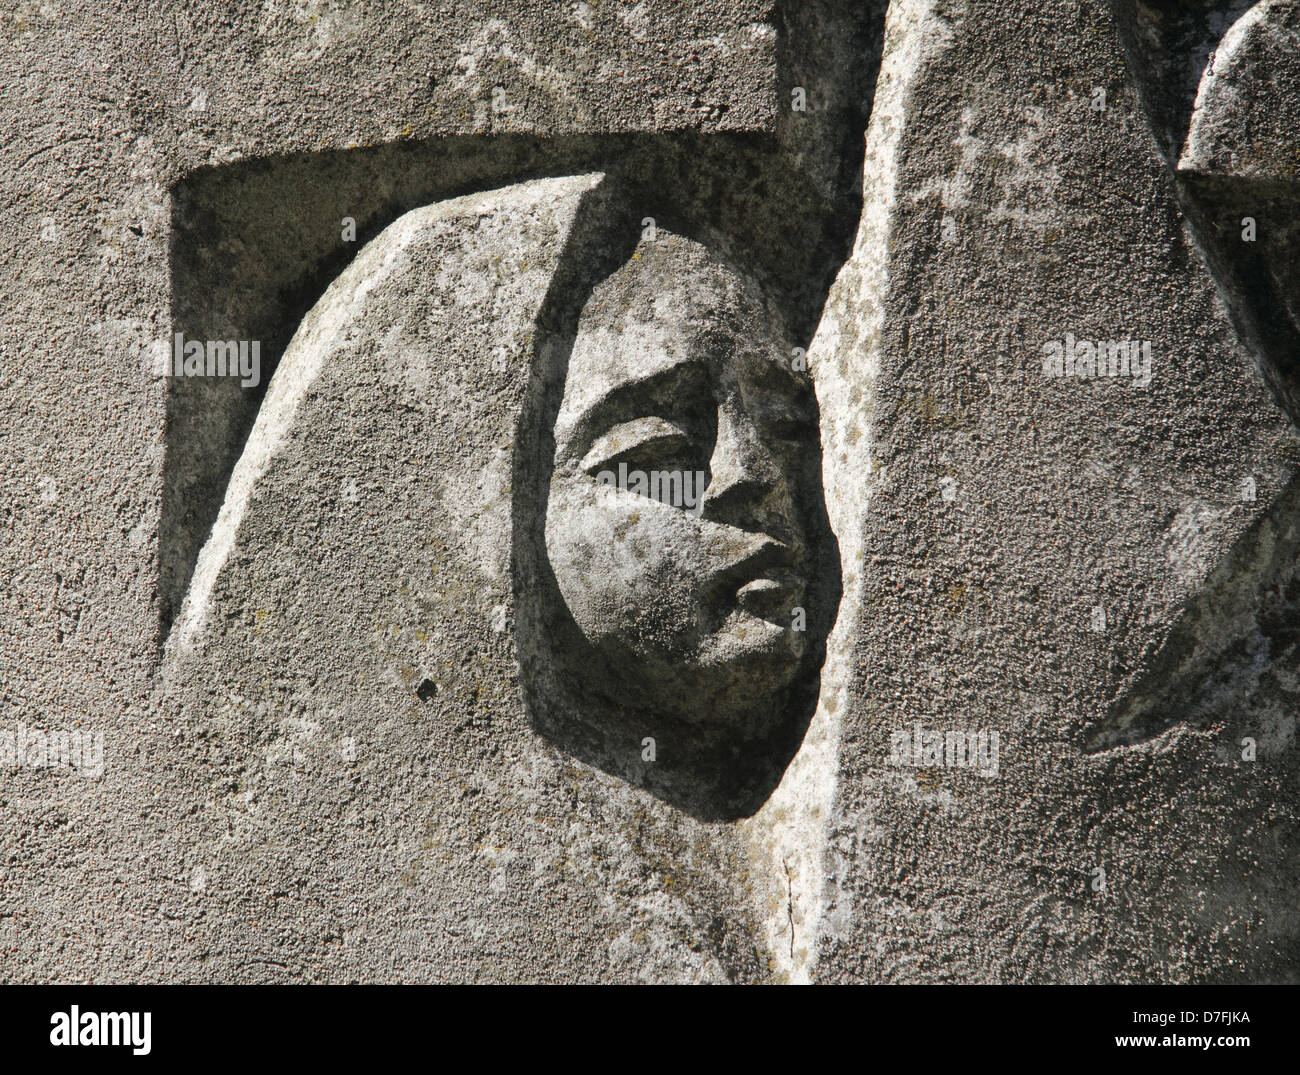 An orphan's face engraved on a section of Janusz Korczak Sculpture In Front Of The Krochmalna Street Orphanage - Stock Image